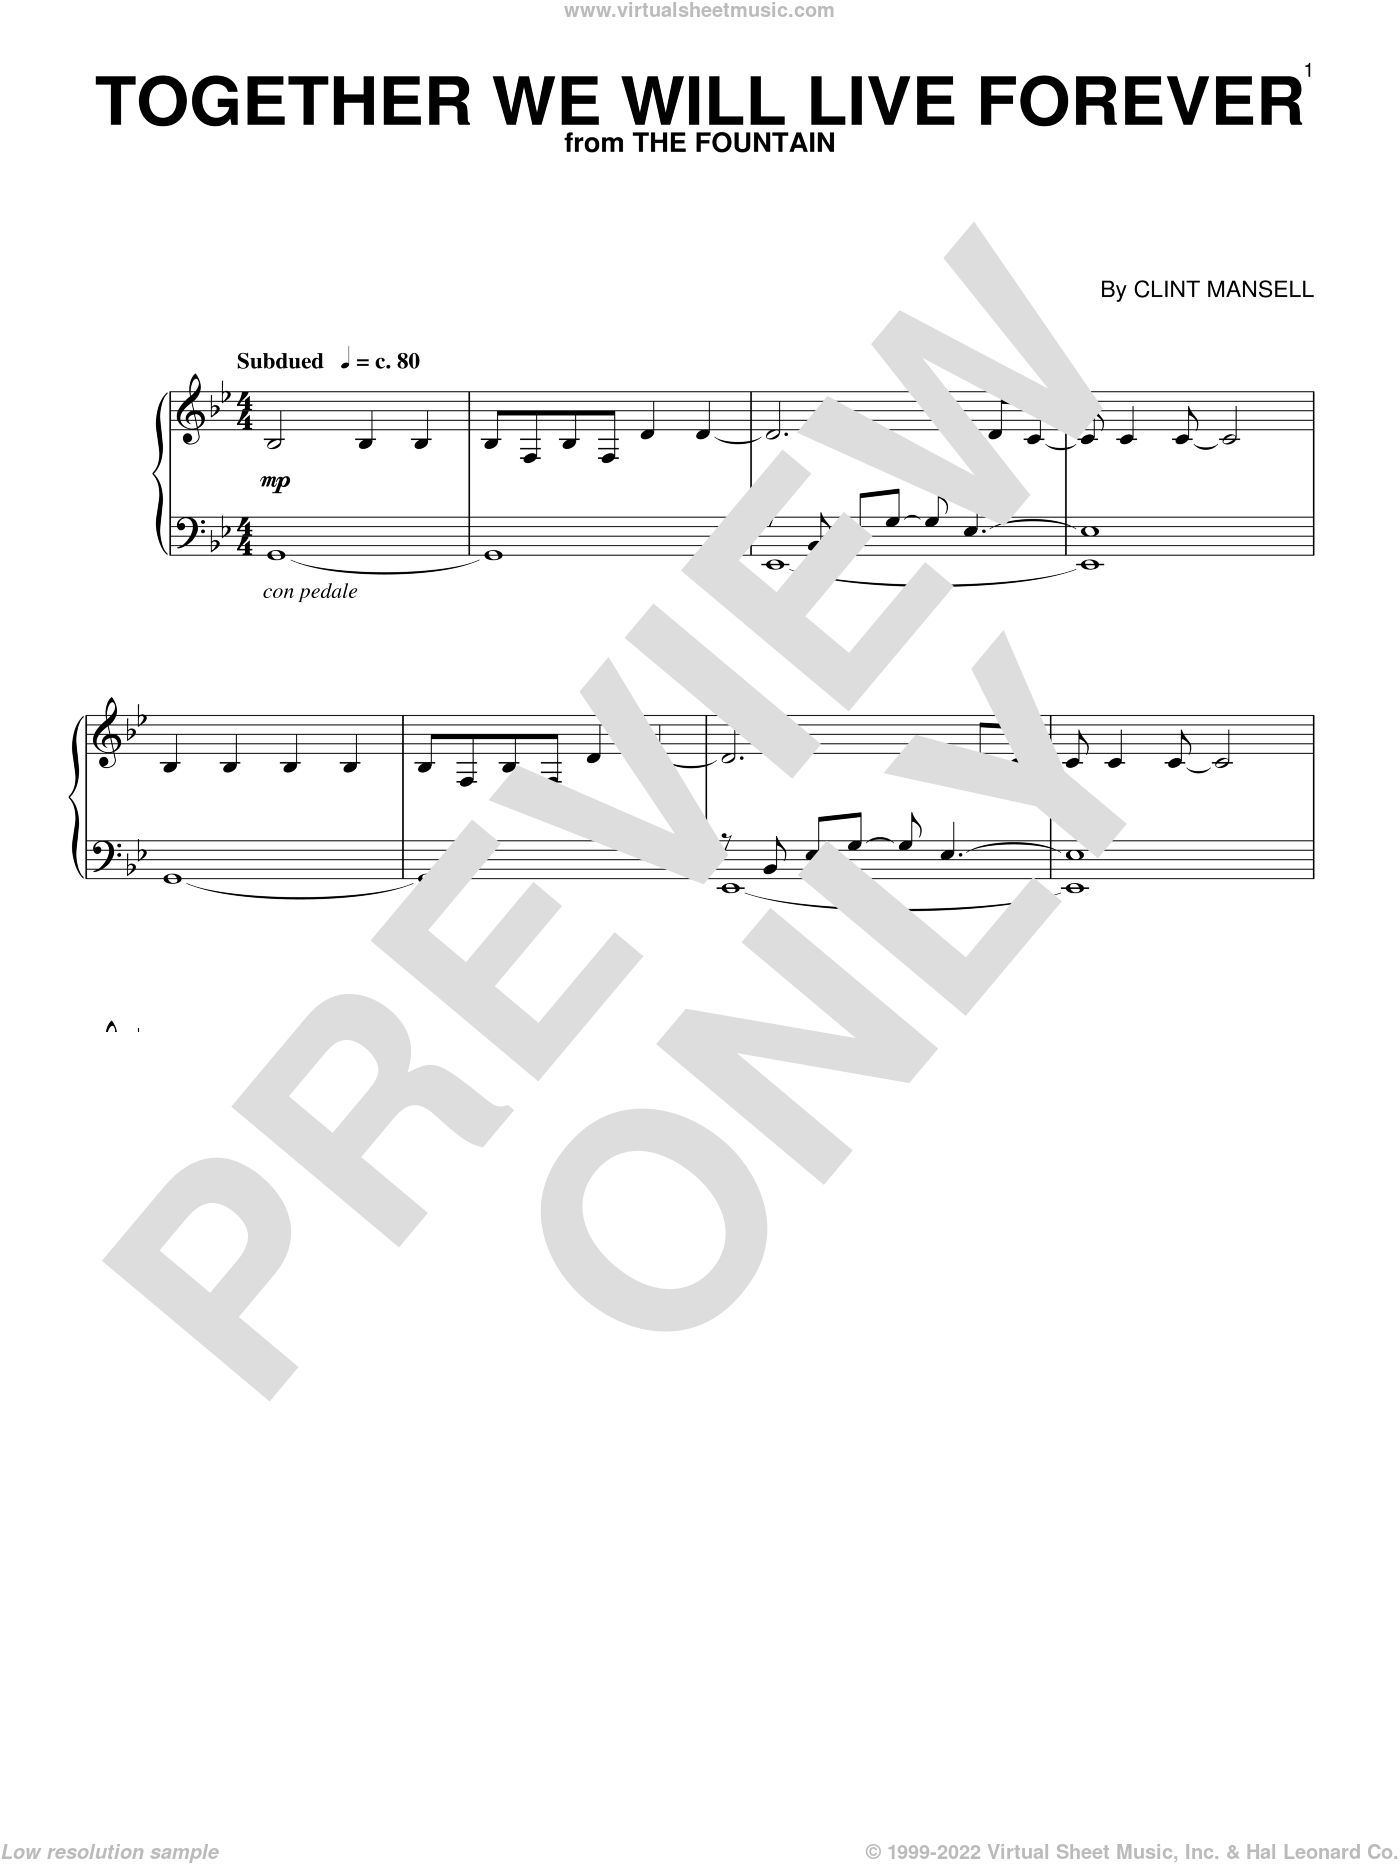 Together We Will Live Forever sheet music for piano solo by Clint Mansell, intermediate skill level